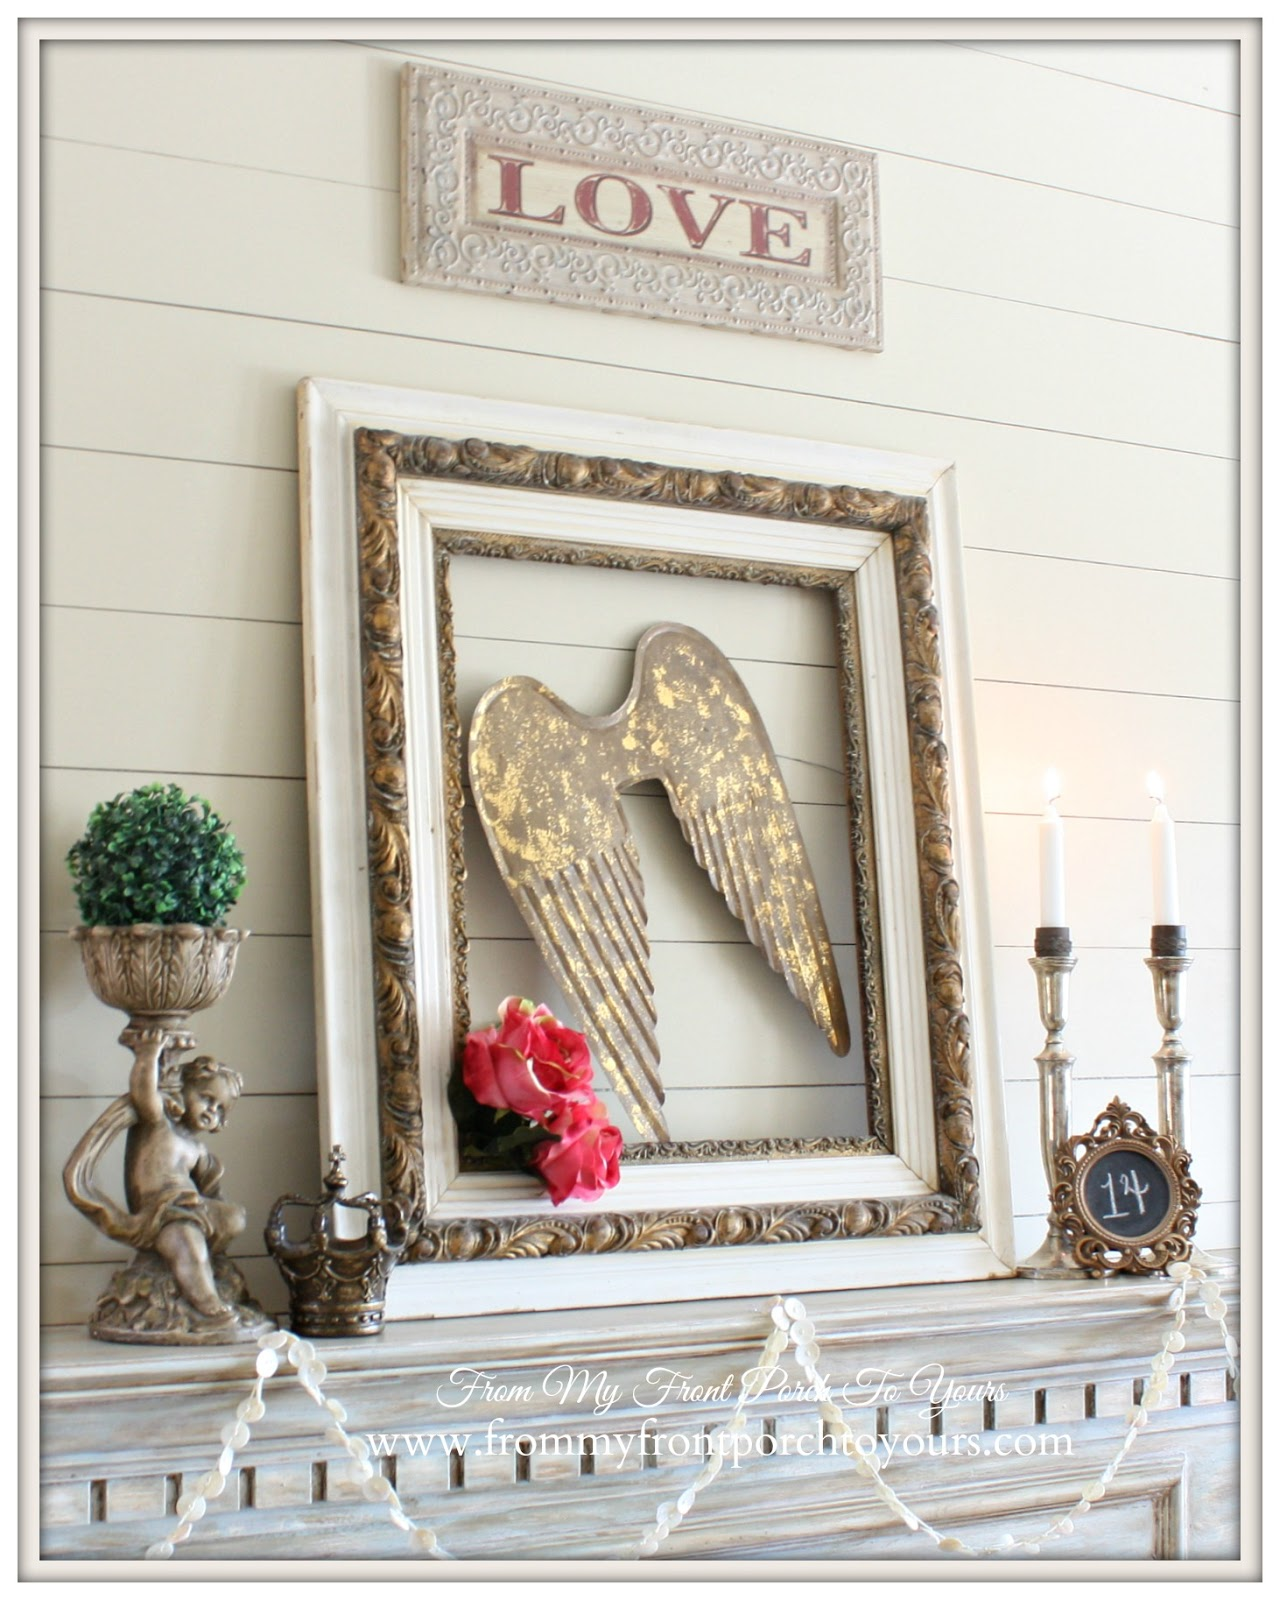 Valentines Day Mantel-Valentines Round Up- From My Front Porch To Yours